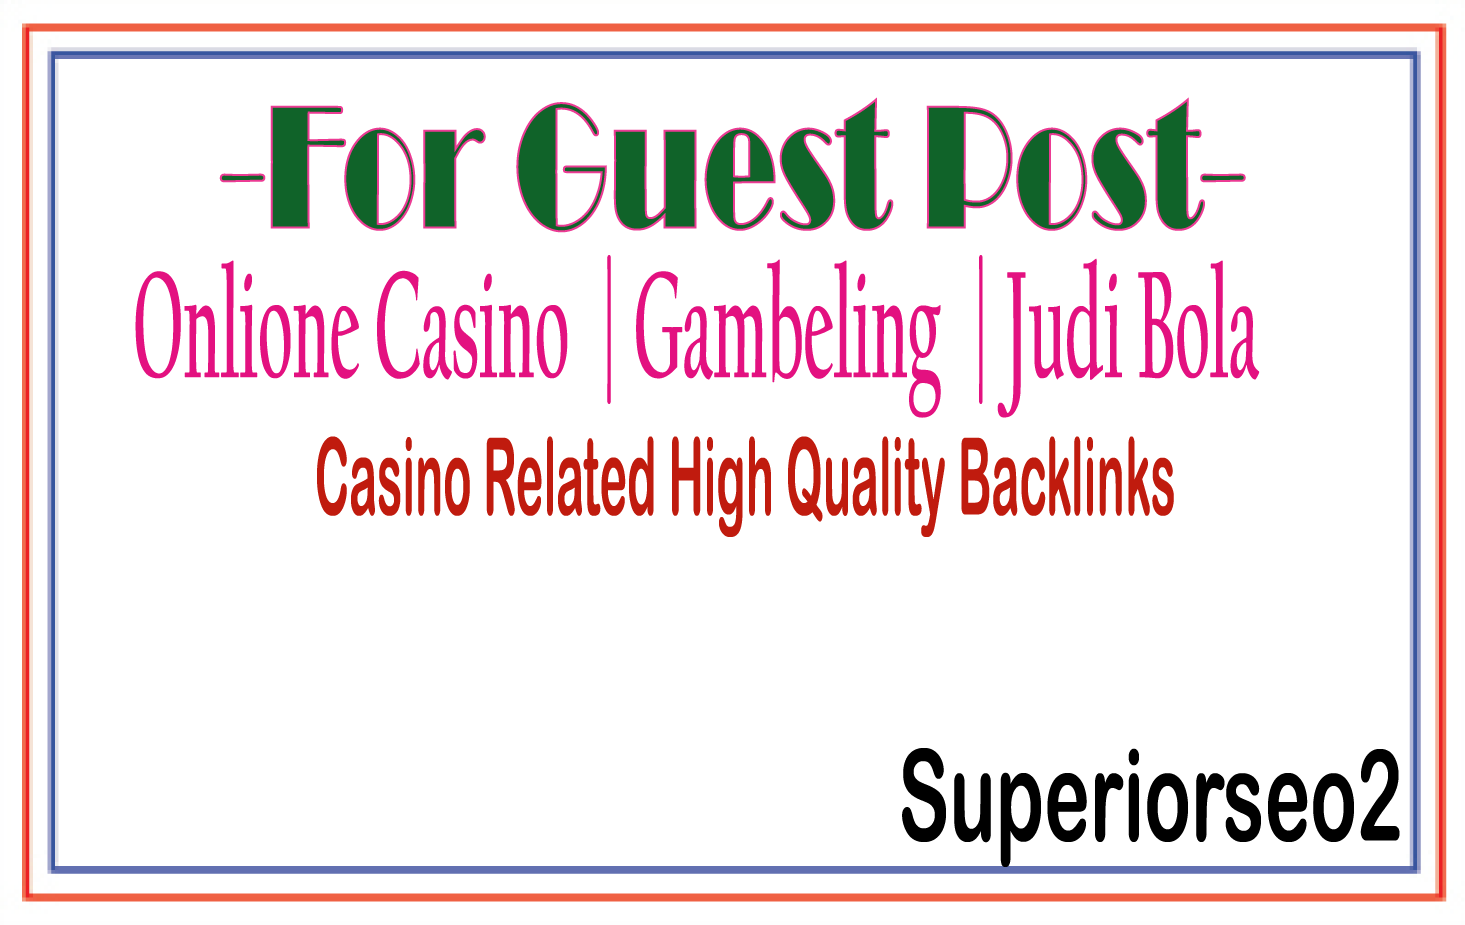 Publish A Guest Post on Casino-Gambling Related Site Plus 500 K GSA SER BACKLINKS